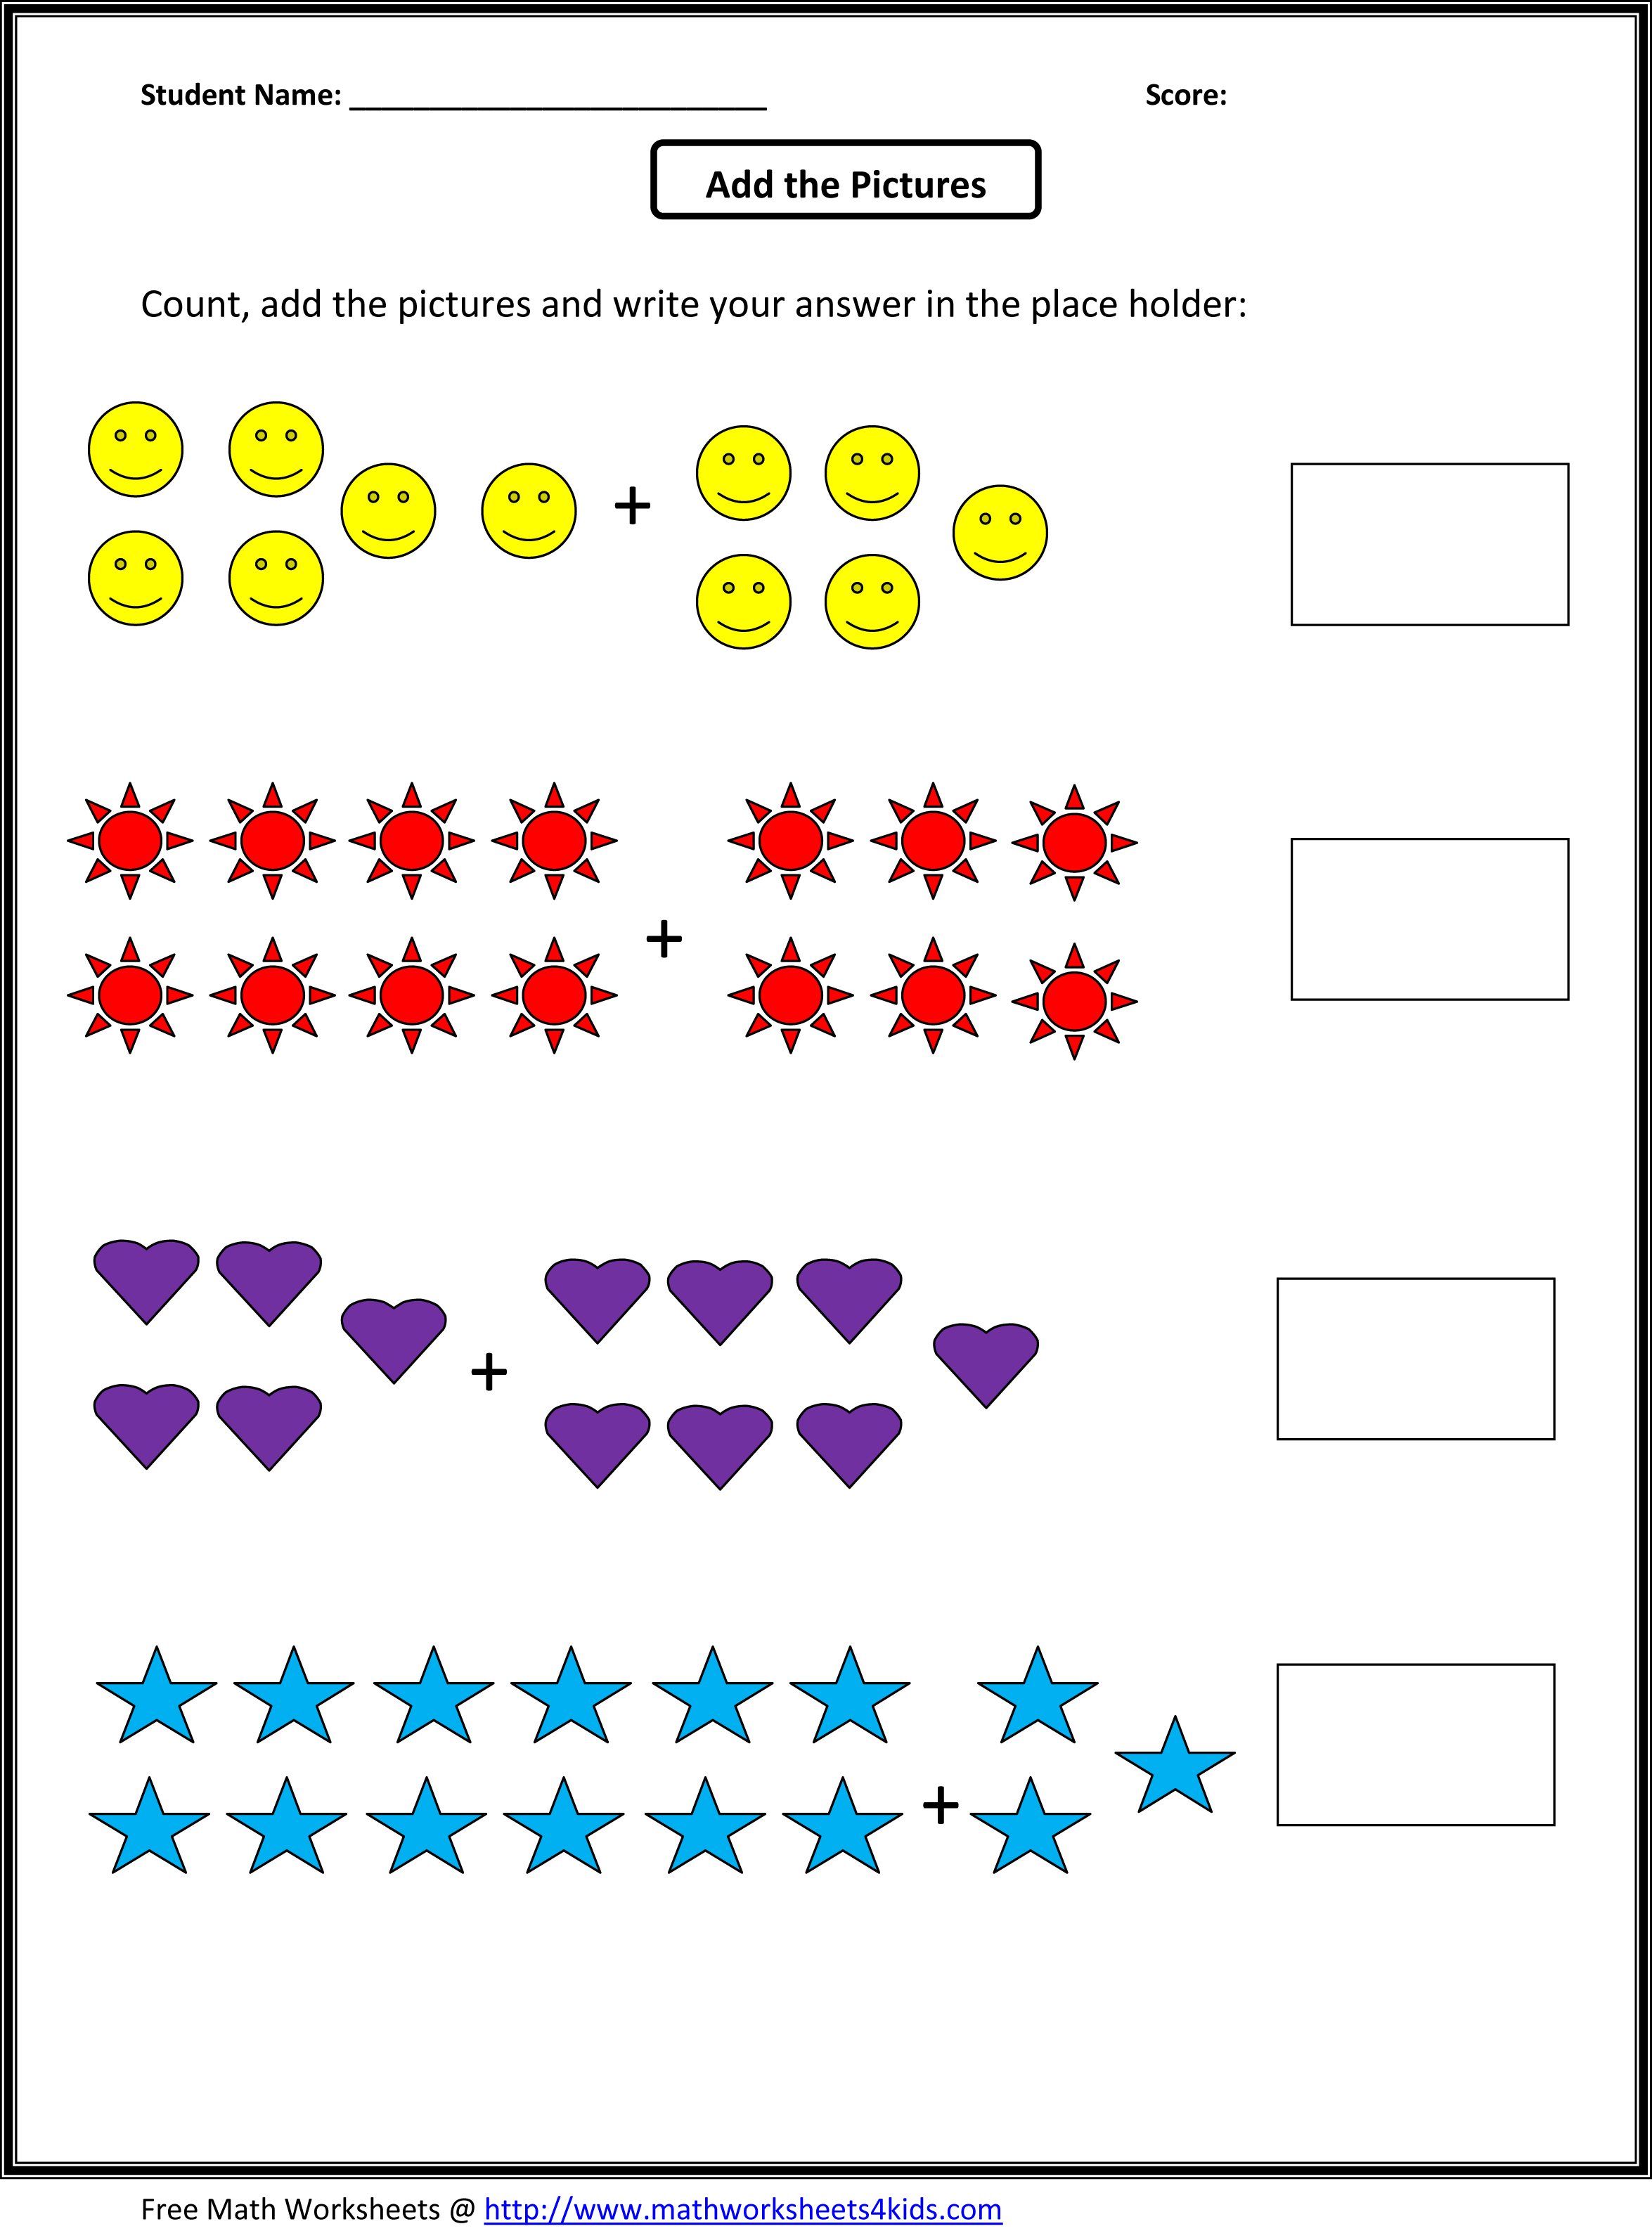 Weirdmailus  Gorgeous Grade  Maths Worksheet  Reocurent With Entrancing Math Worksheets For St Grade Free  Reocurent With Beautiful Math Worksheets For Kindergarten And First Grade Also Character Worksheet For Writers In Addition Standard Form Linear Equation Worksheet And Simple Present Tense Worksheet As Well As Geometry Rotation Worksheet Additionally Pointillism Worksheet From Reocurentcom With Weirdmailus  Entrancing Grade  Maths Worksheet  Reocurent With Beautiful Math Worksheets For St Grade Free  Reocurent And Gorgeous Math Worksheets For Kindergarten And First Grade Also Character Worksheet For Writers In Addition Standard Form Linear Equation Worksheet From Reocurentcom